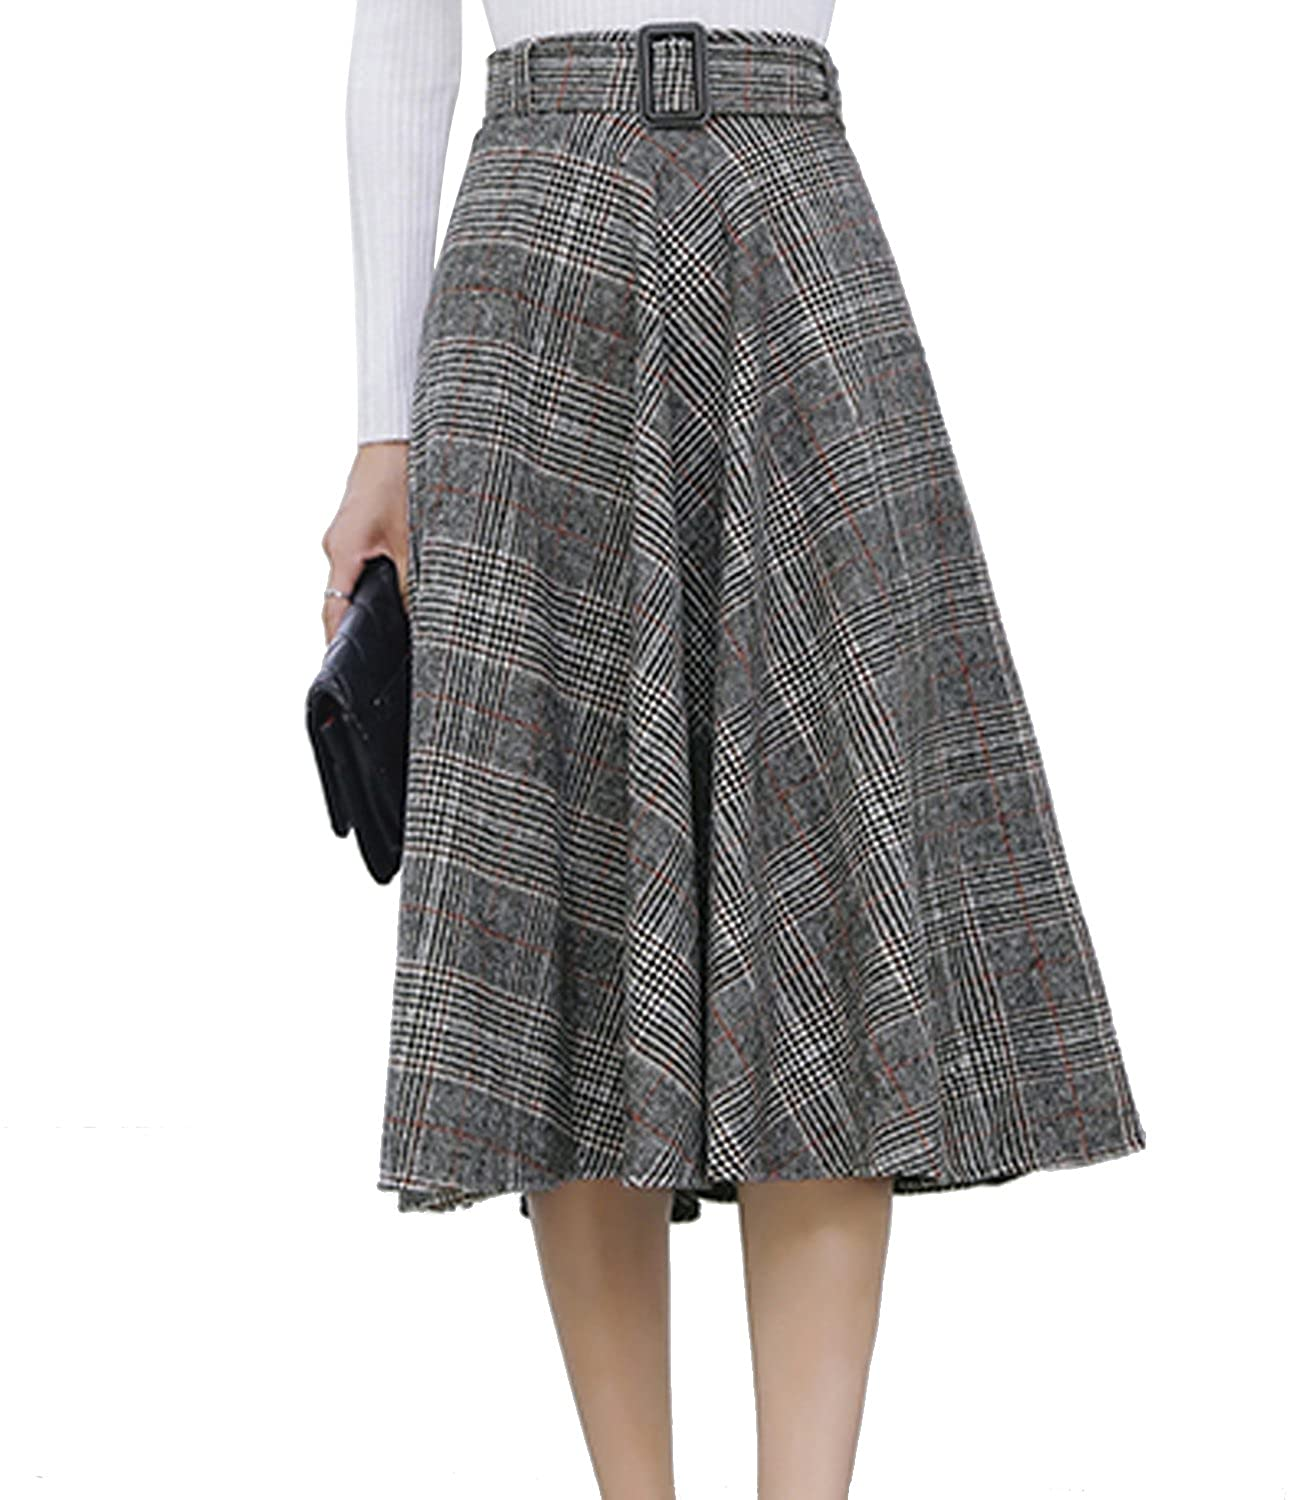 1950s Swing Skirt, Poodle Skirt, Pencil Skirts Sanifer Womens Warm Woolen Plaid Gray Pleated A Line Skirt with Belt $27.99 AT vintagedancer.com